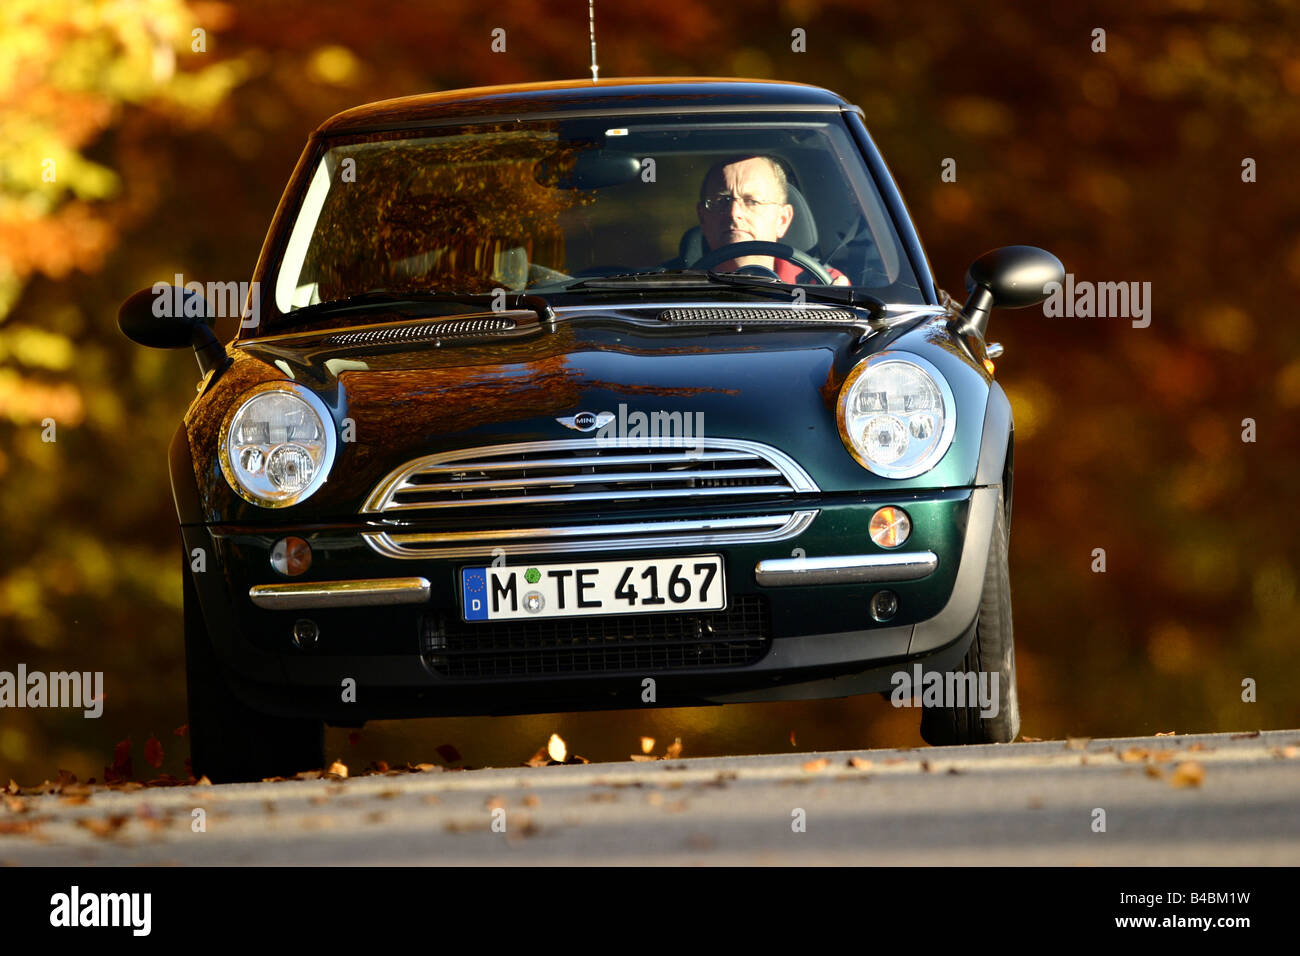 Car, Mini One D, model year 2001-, dark green, Miniapprox.s, Limousine, FGHDS, driving, frontal view, side view, - Stock Image